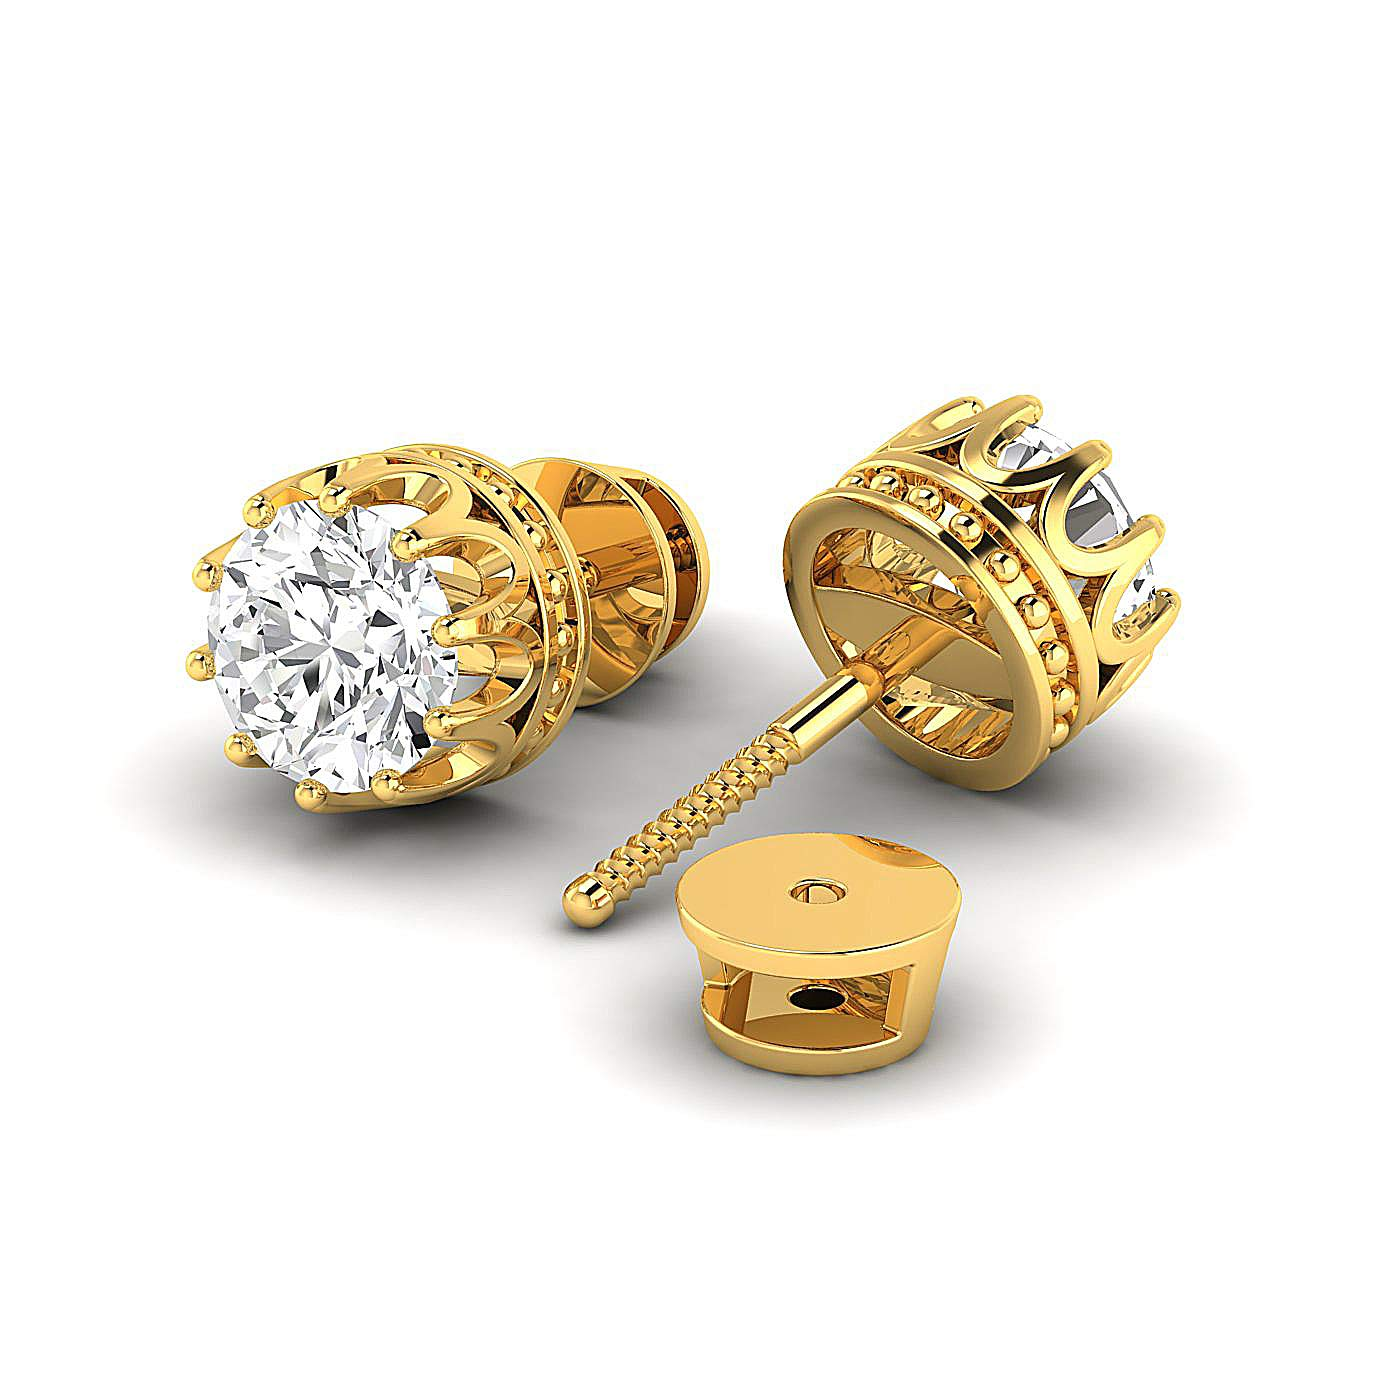 / Pure Gold // 925 Sterling Silver Earring Studs 0.3 to 4 Carat Moissanite Stud Earrings Round Brilliant GH//VVS Stud Earrings for Women perfect Jewelry Gifts for Women Teen Girls